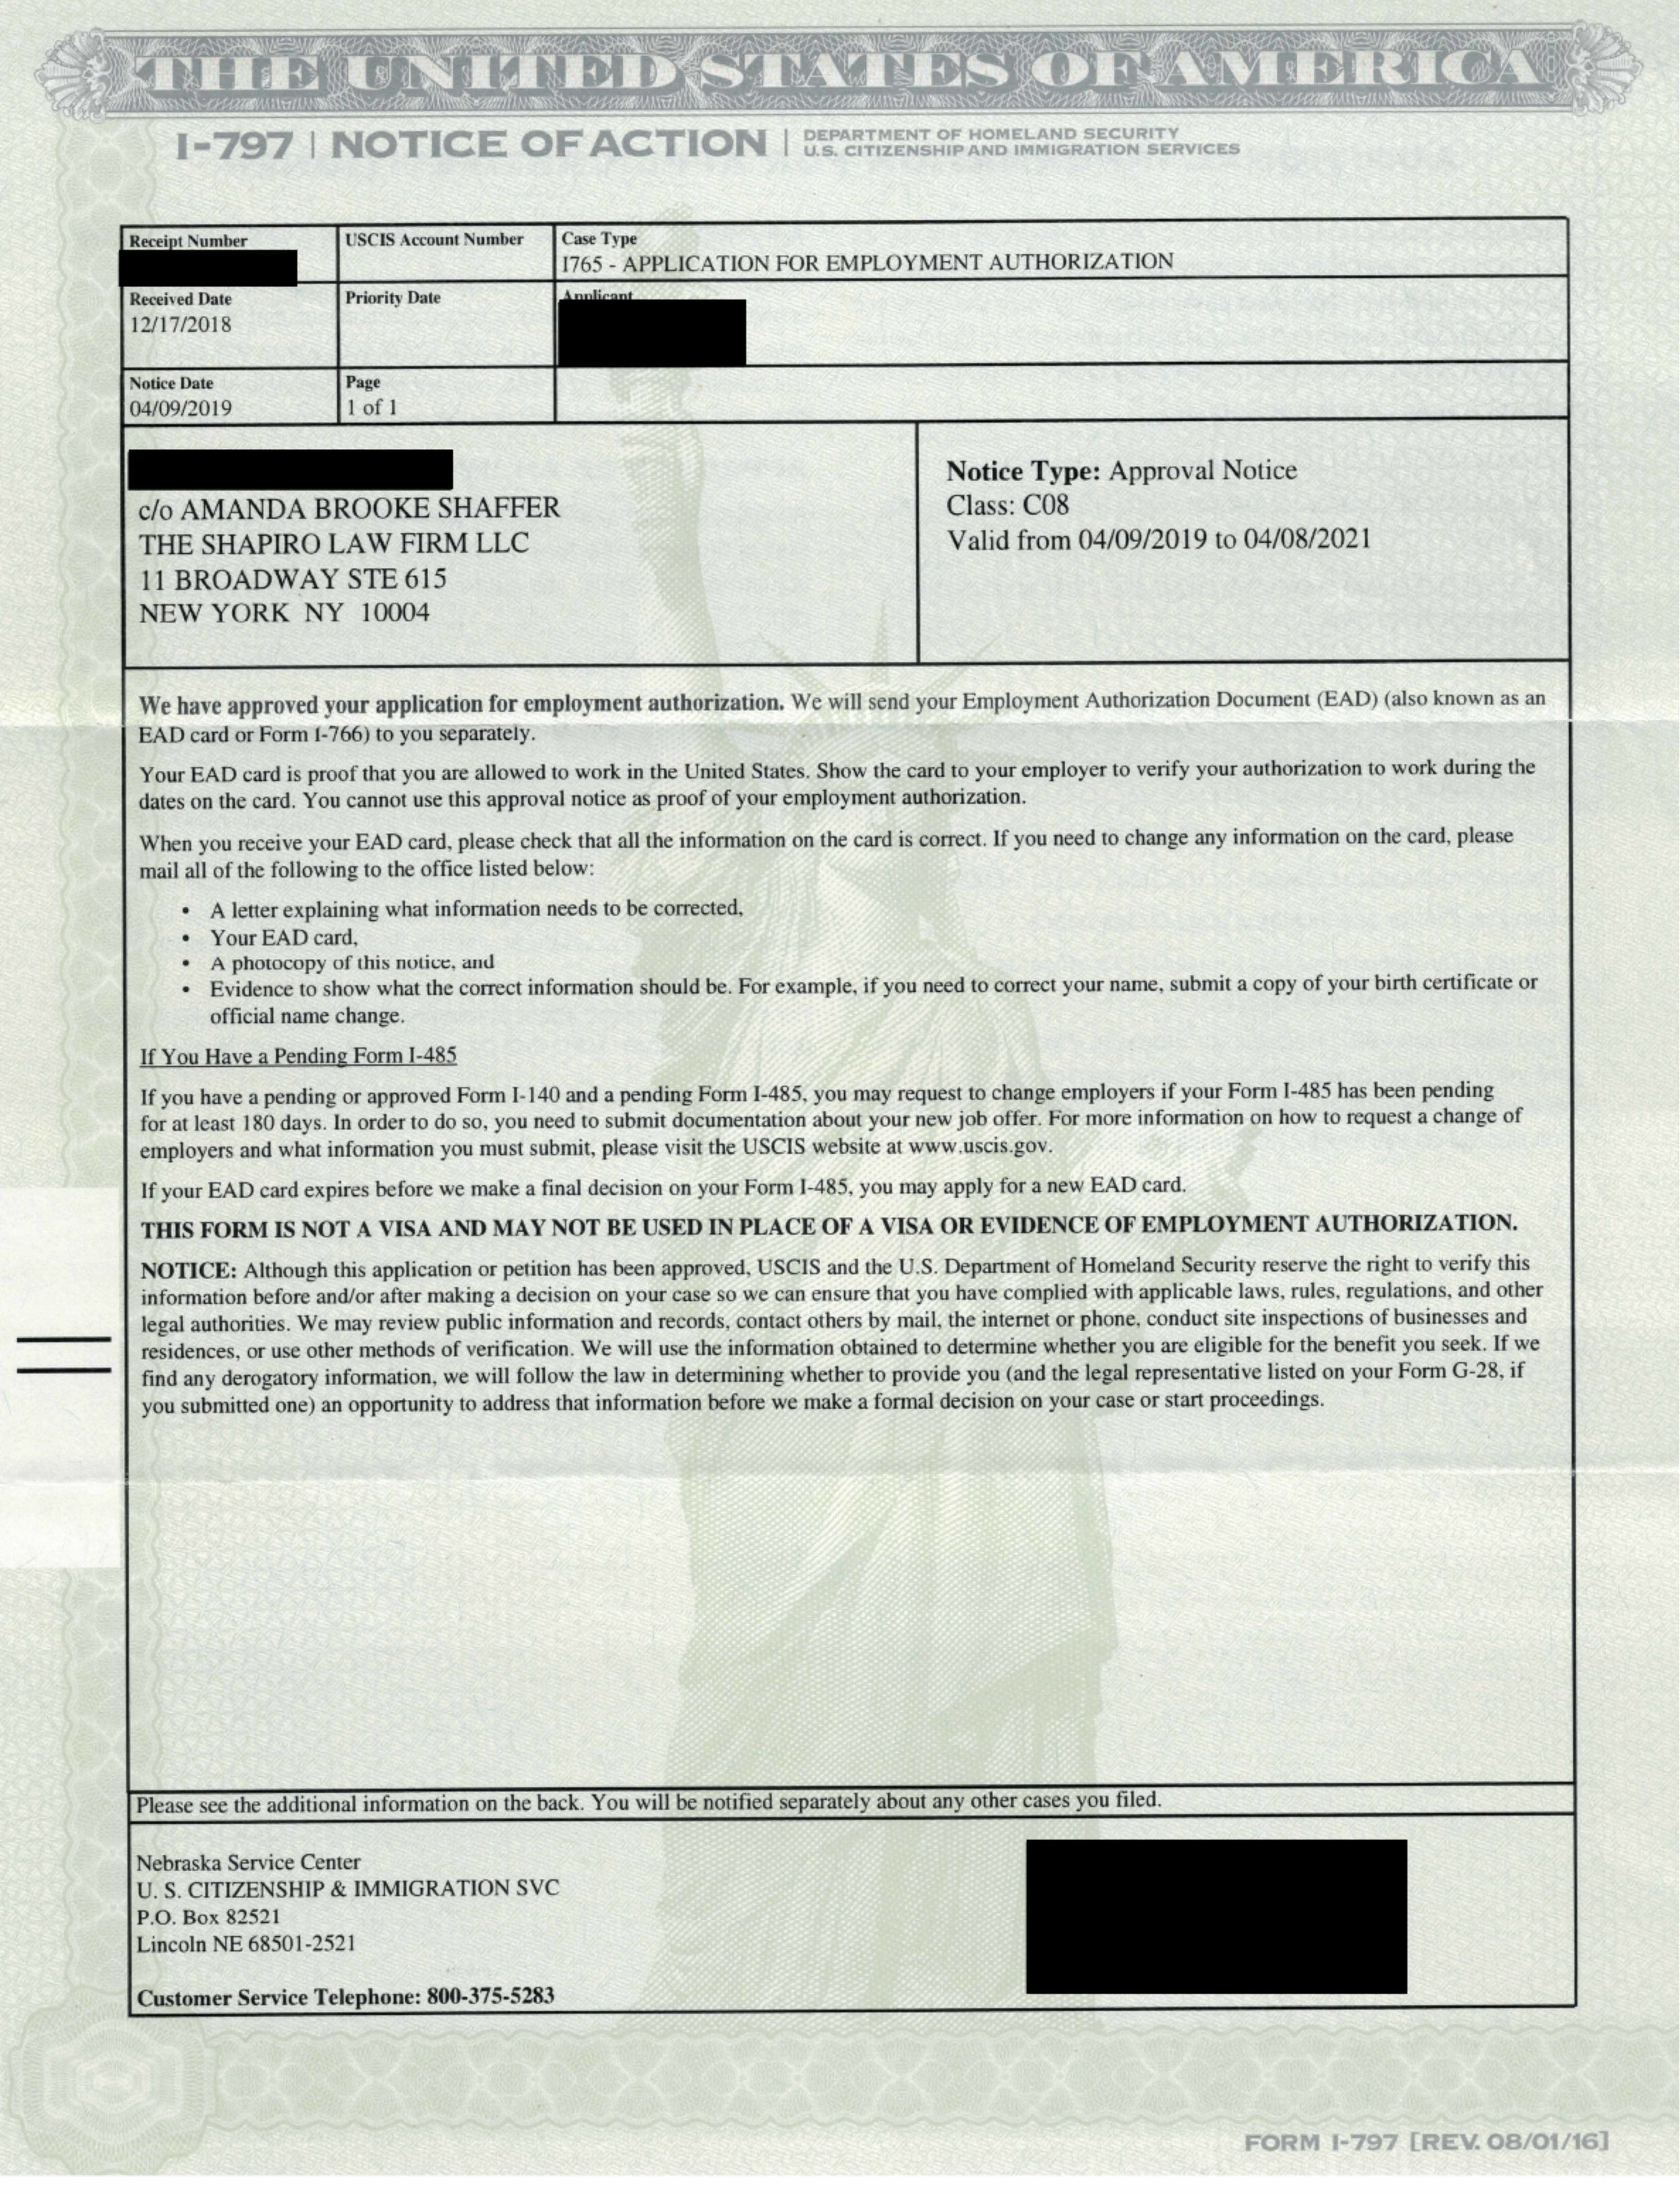 Form I-797, Notice of Action - I-765 Approval Notice (Asylum Applicant) (Renewal EAD)